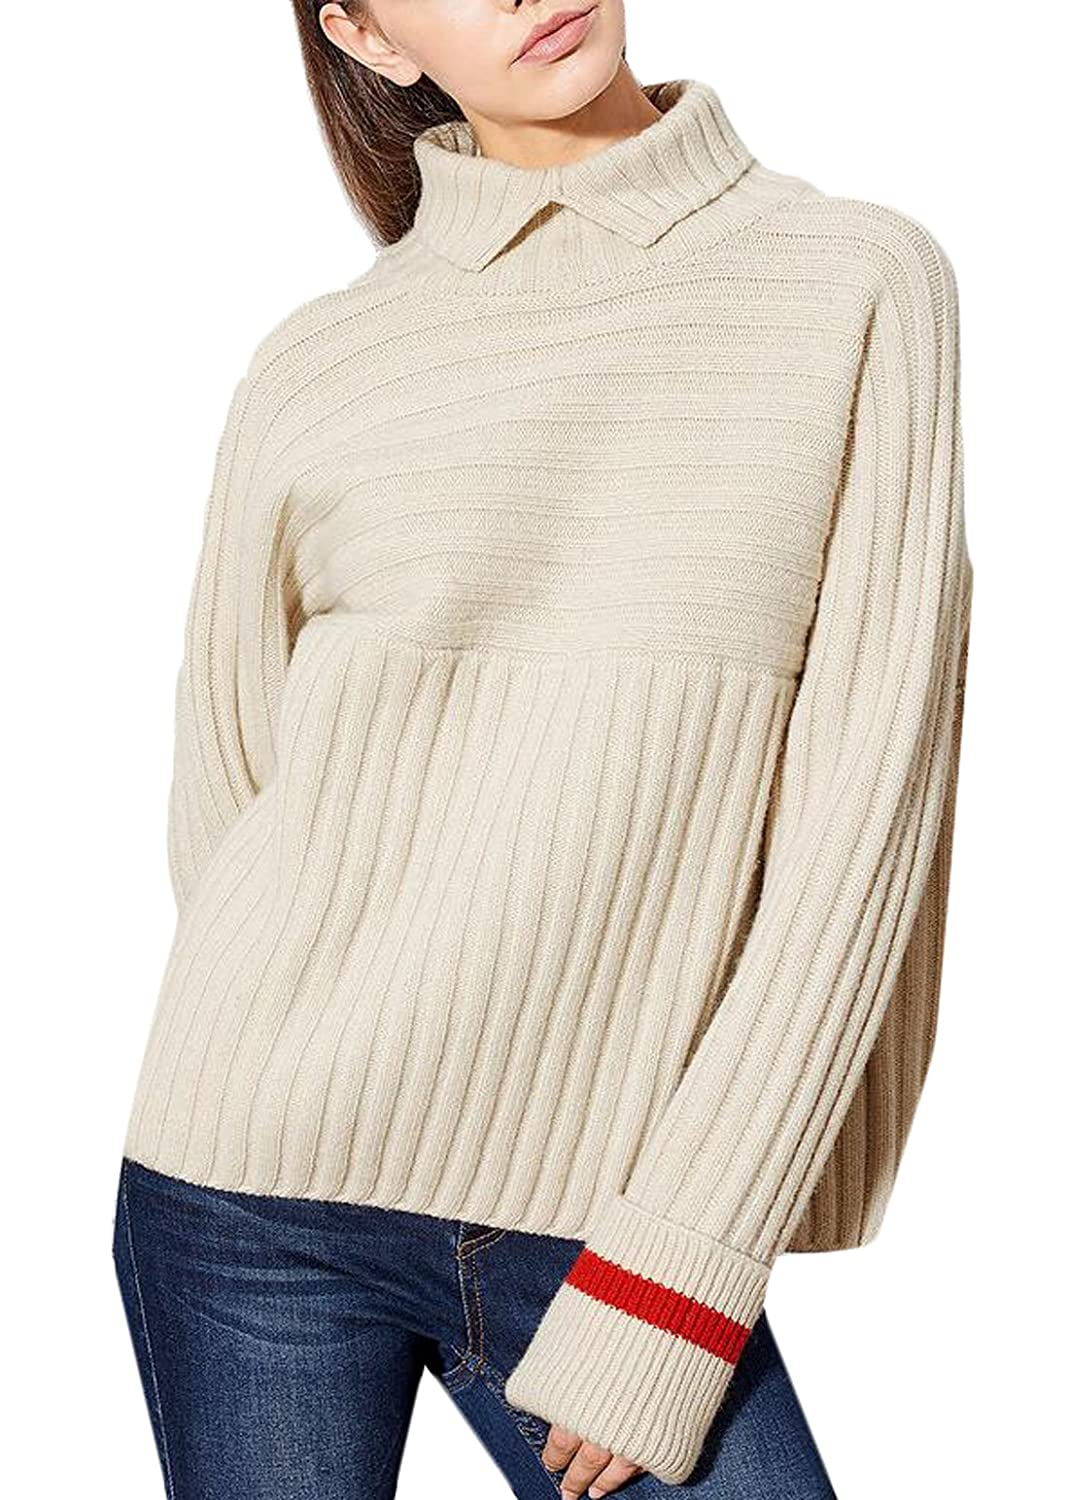 WANSHIYISHE Womens Simple Hit Color High Neck Knit Sweater